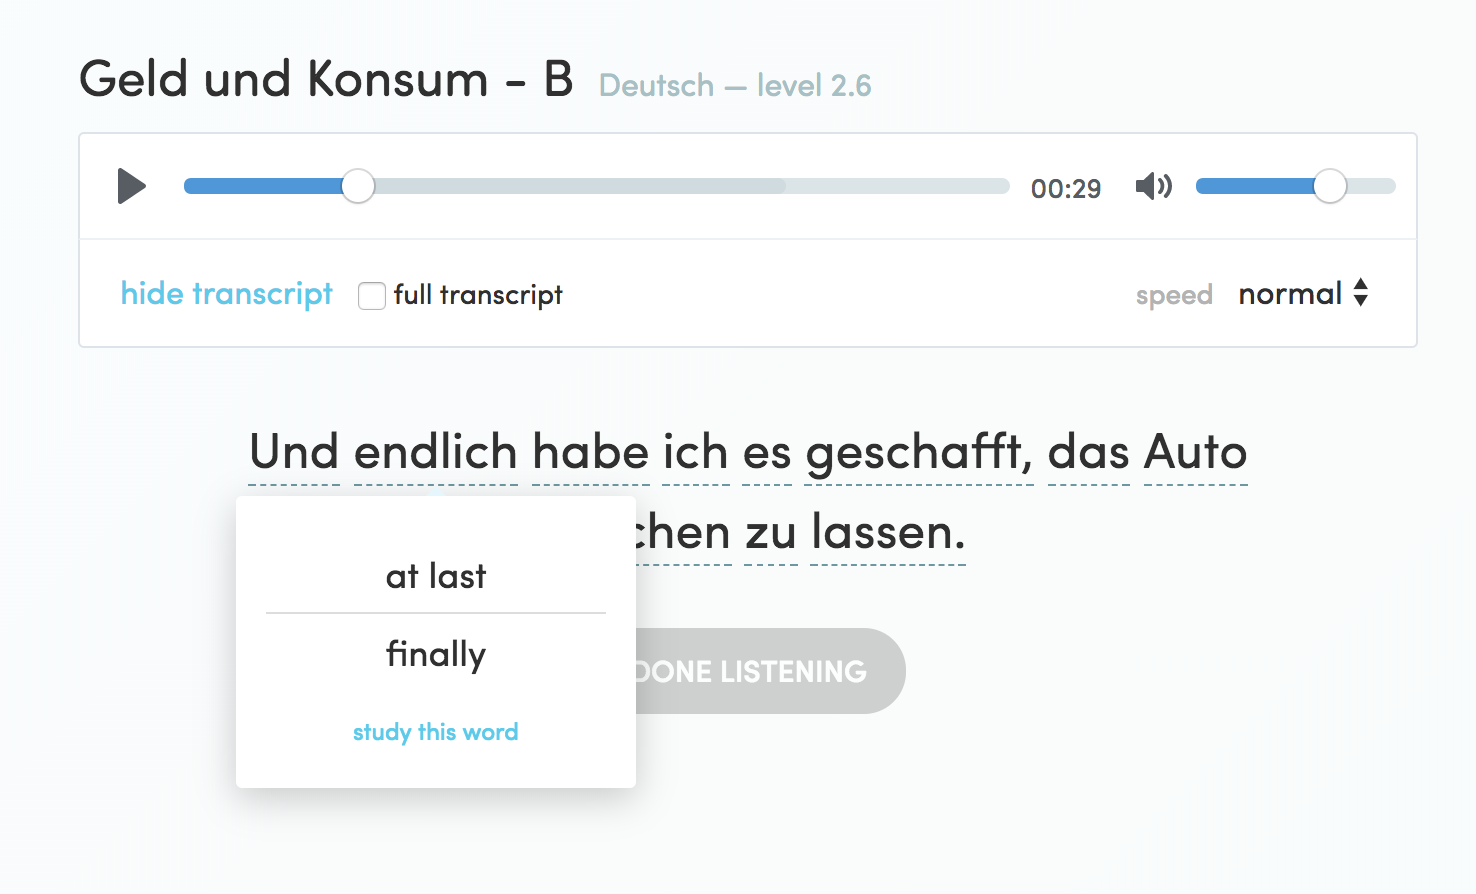 New chatterbug features goals certifications and audio you will now occasionally get audio clips to practice listening to the language you are learning you can listen with or without the transcription xflitez Image collections